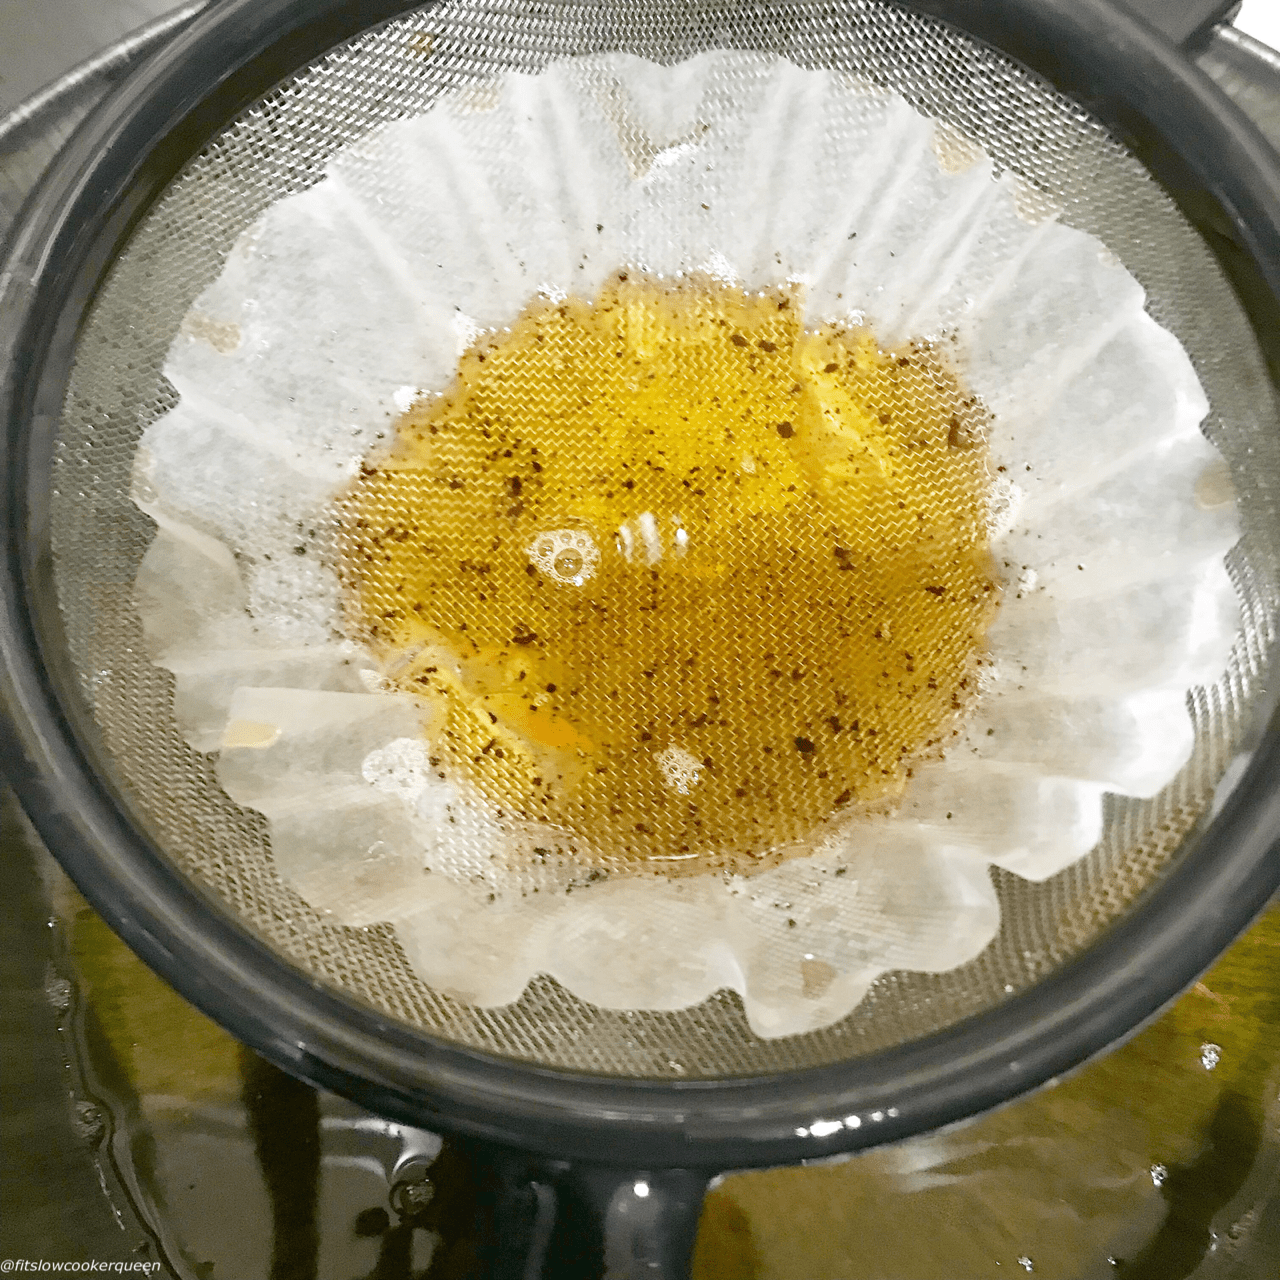 Ghee is clarified butter; butter that has been heated to remove the solids, water, and lactose. Ghee is all the rage now being a popular, healthy fat to use when cooking in diets like keto, paleo, and whole30. Store-bought ghee can be expensive; making your own using your slow cooker is not only easy but cheaper too.